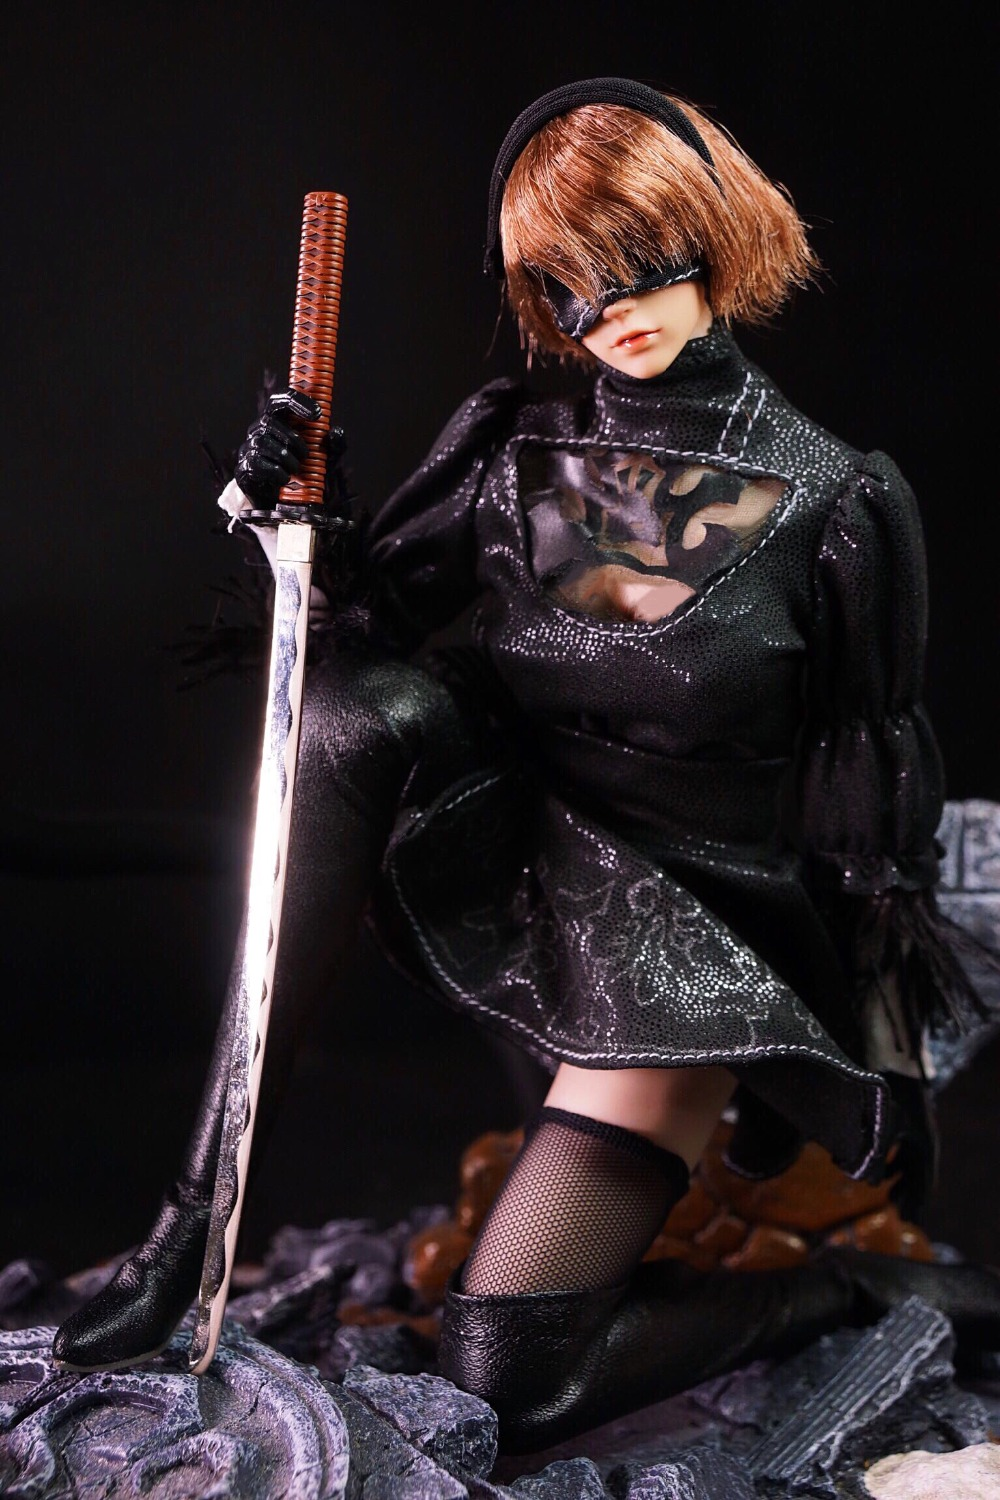 Cosplay Sexy Female Figure Clothes Accessory NieR:Automata YoRHa 2B Clothing Sets for 12 inches Action Figure In Stock 1/6 Scale